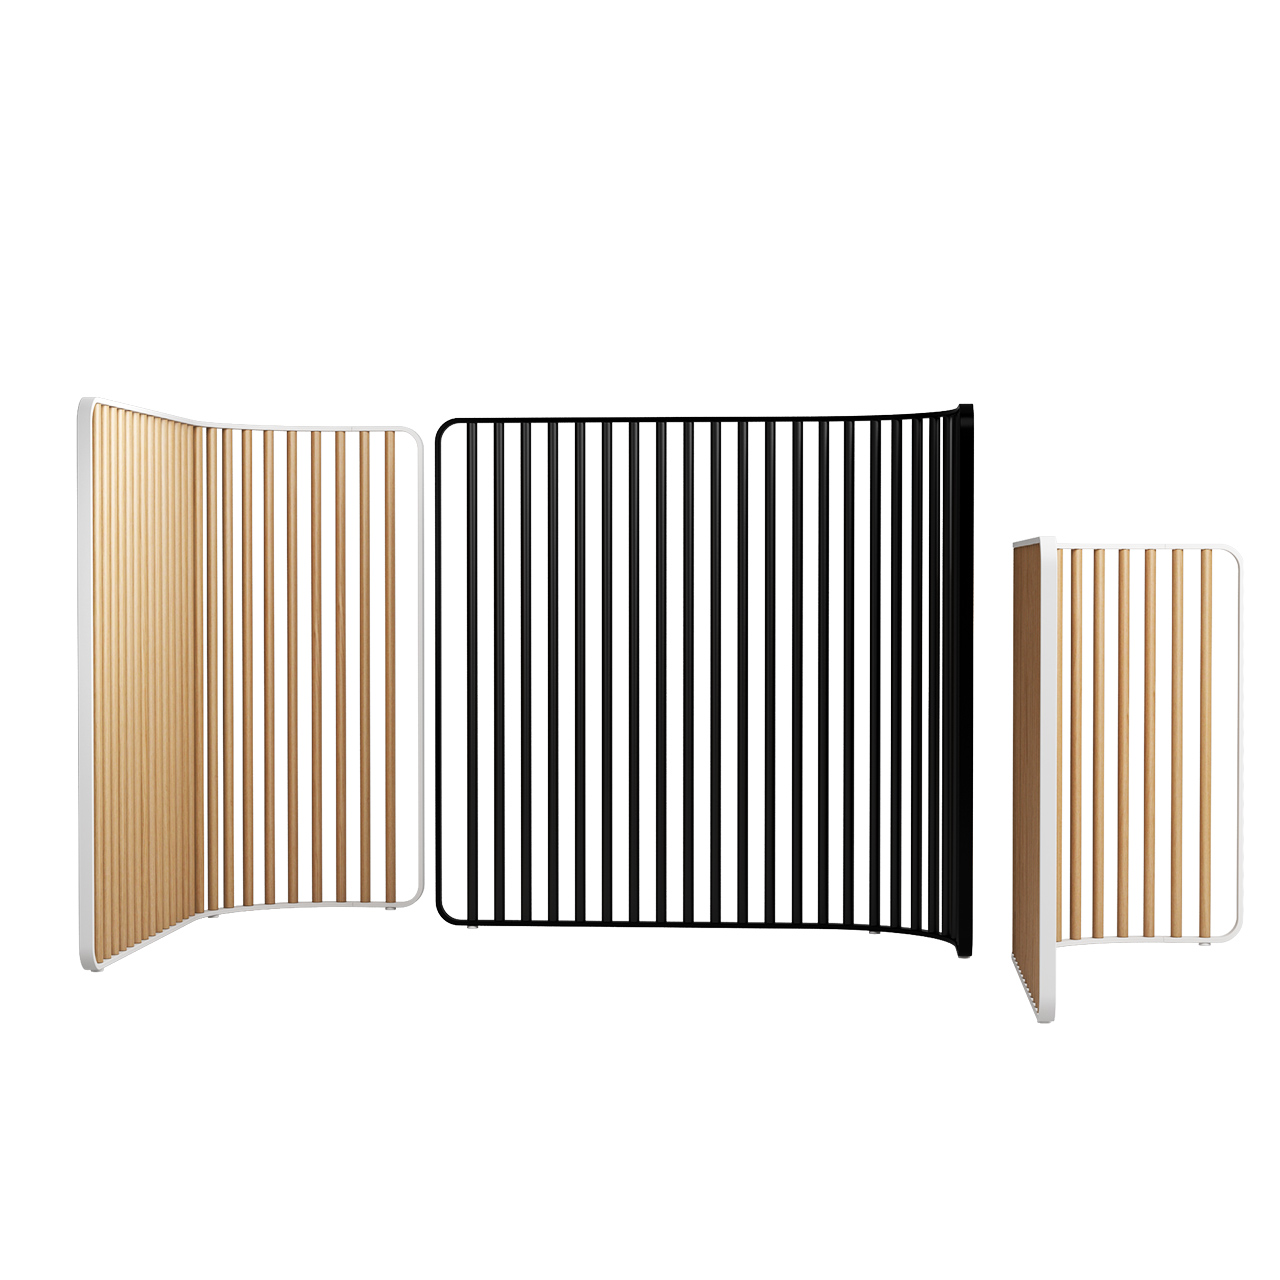 Screen Tubes Space Divider by Lapalma